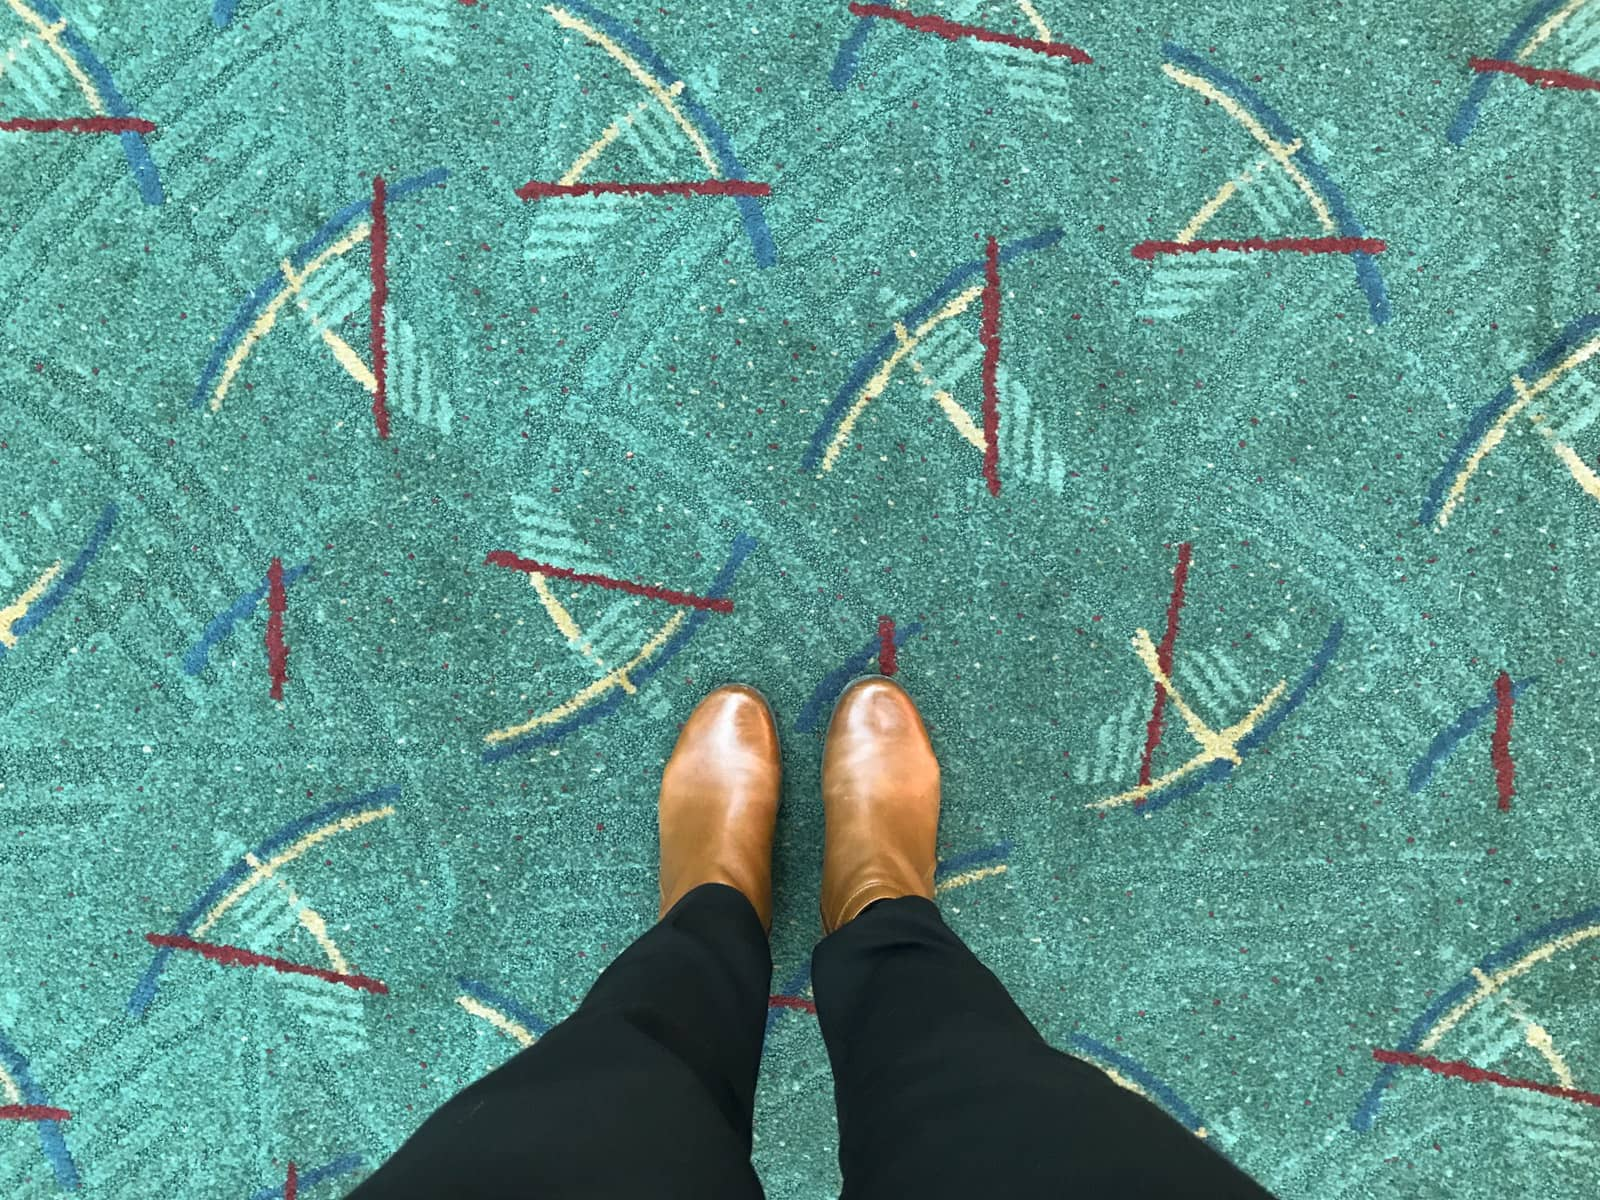 A top-down view of a woman with brown boots on her feet. She is standing on a teal green carpet with a repeating pattern